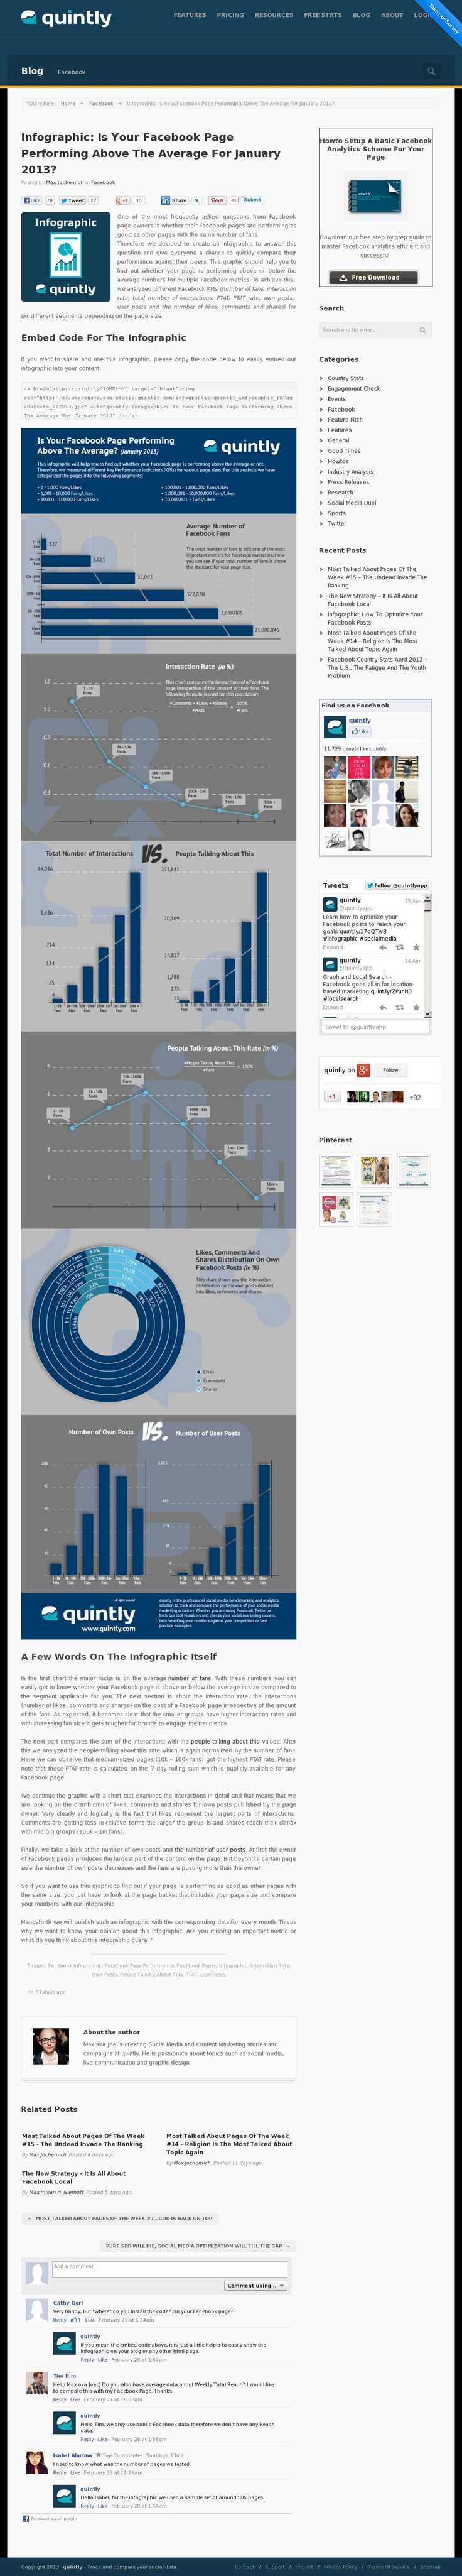 Infographic: Is Your Facebook Page Performing Above The Average For January 2013?